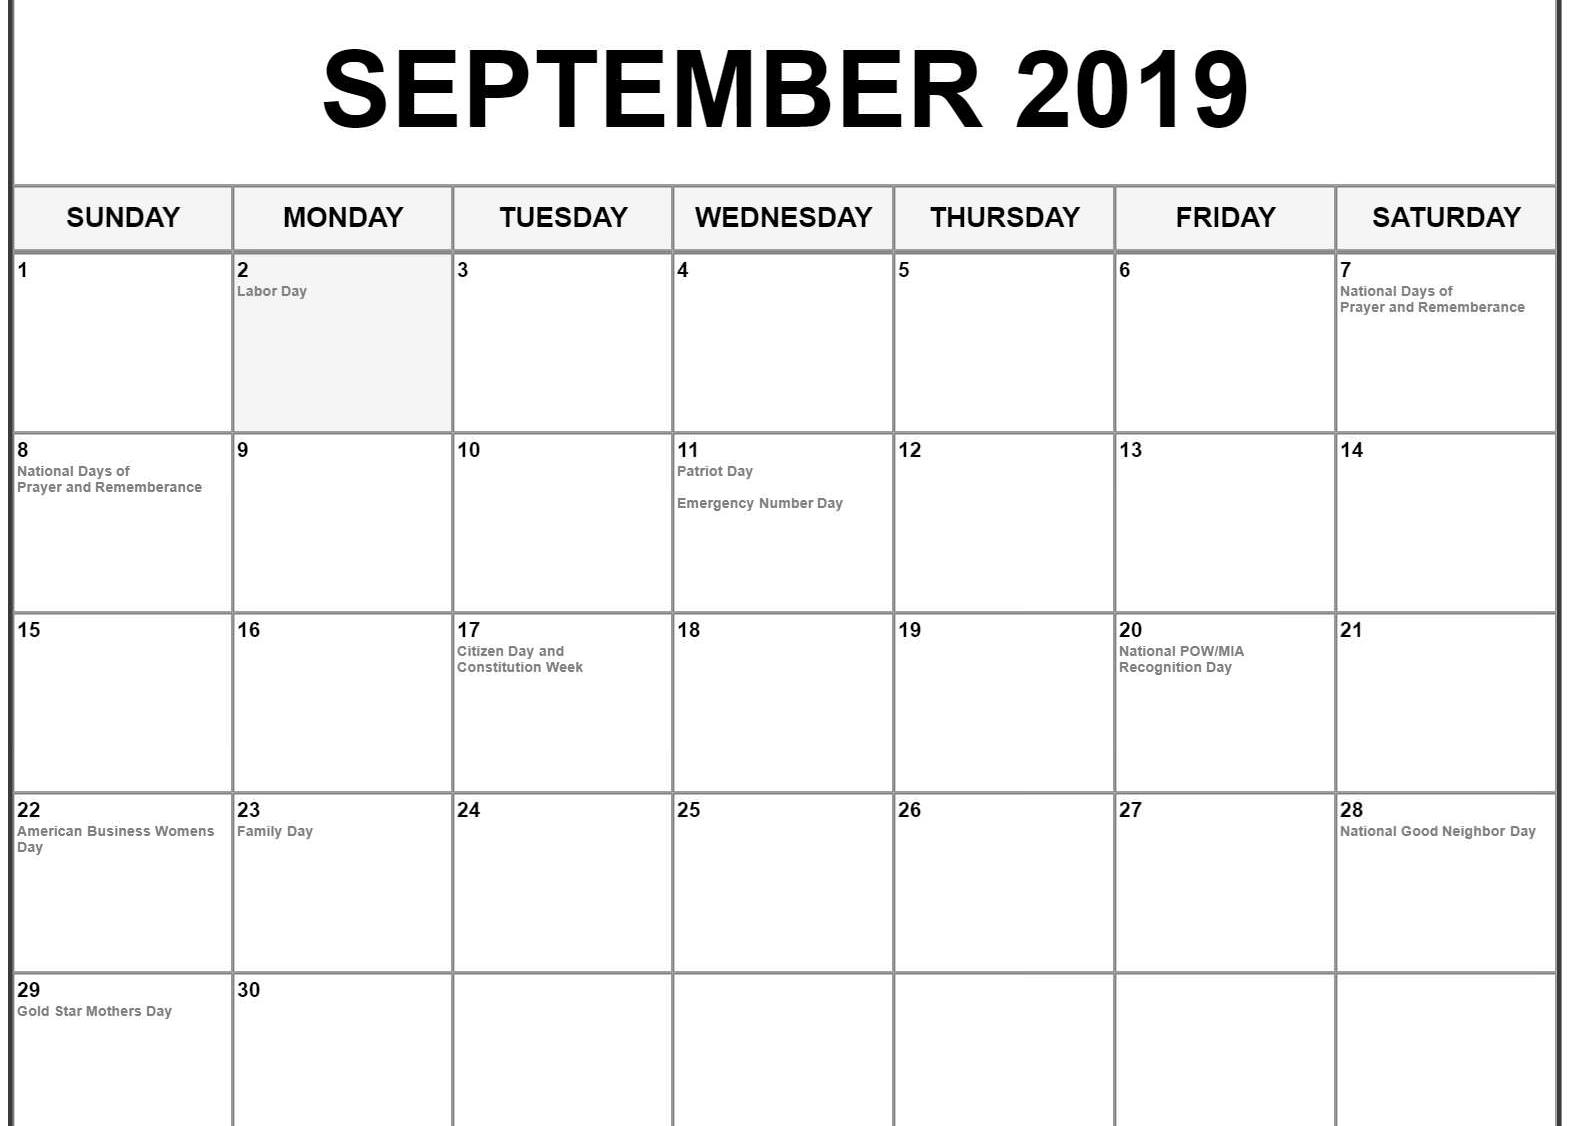 September 2019 Calendar With Holidays - Printable Calendar Templates